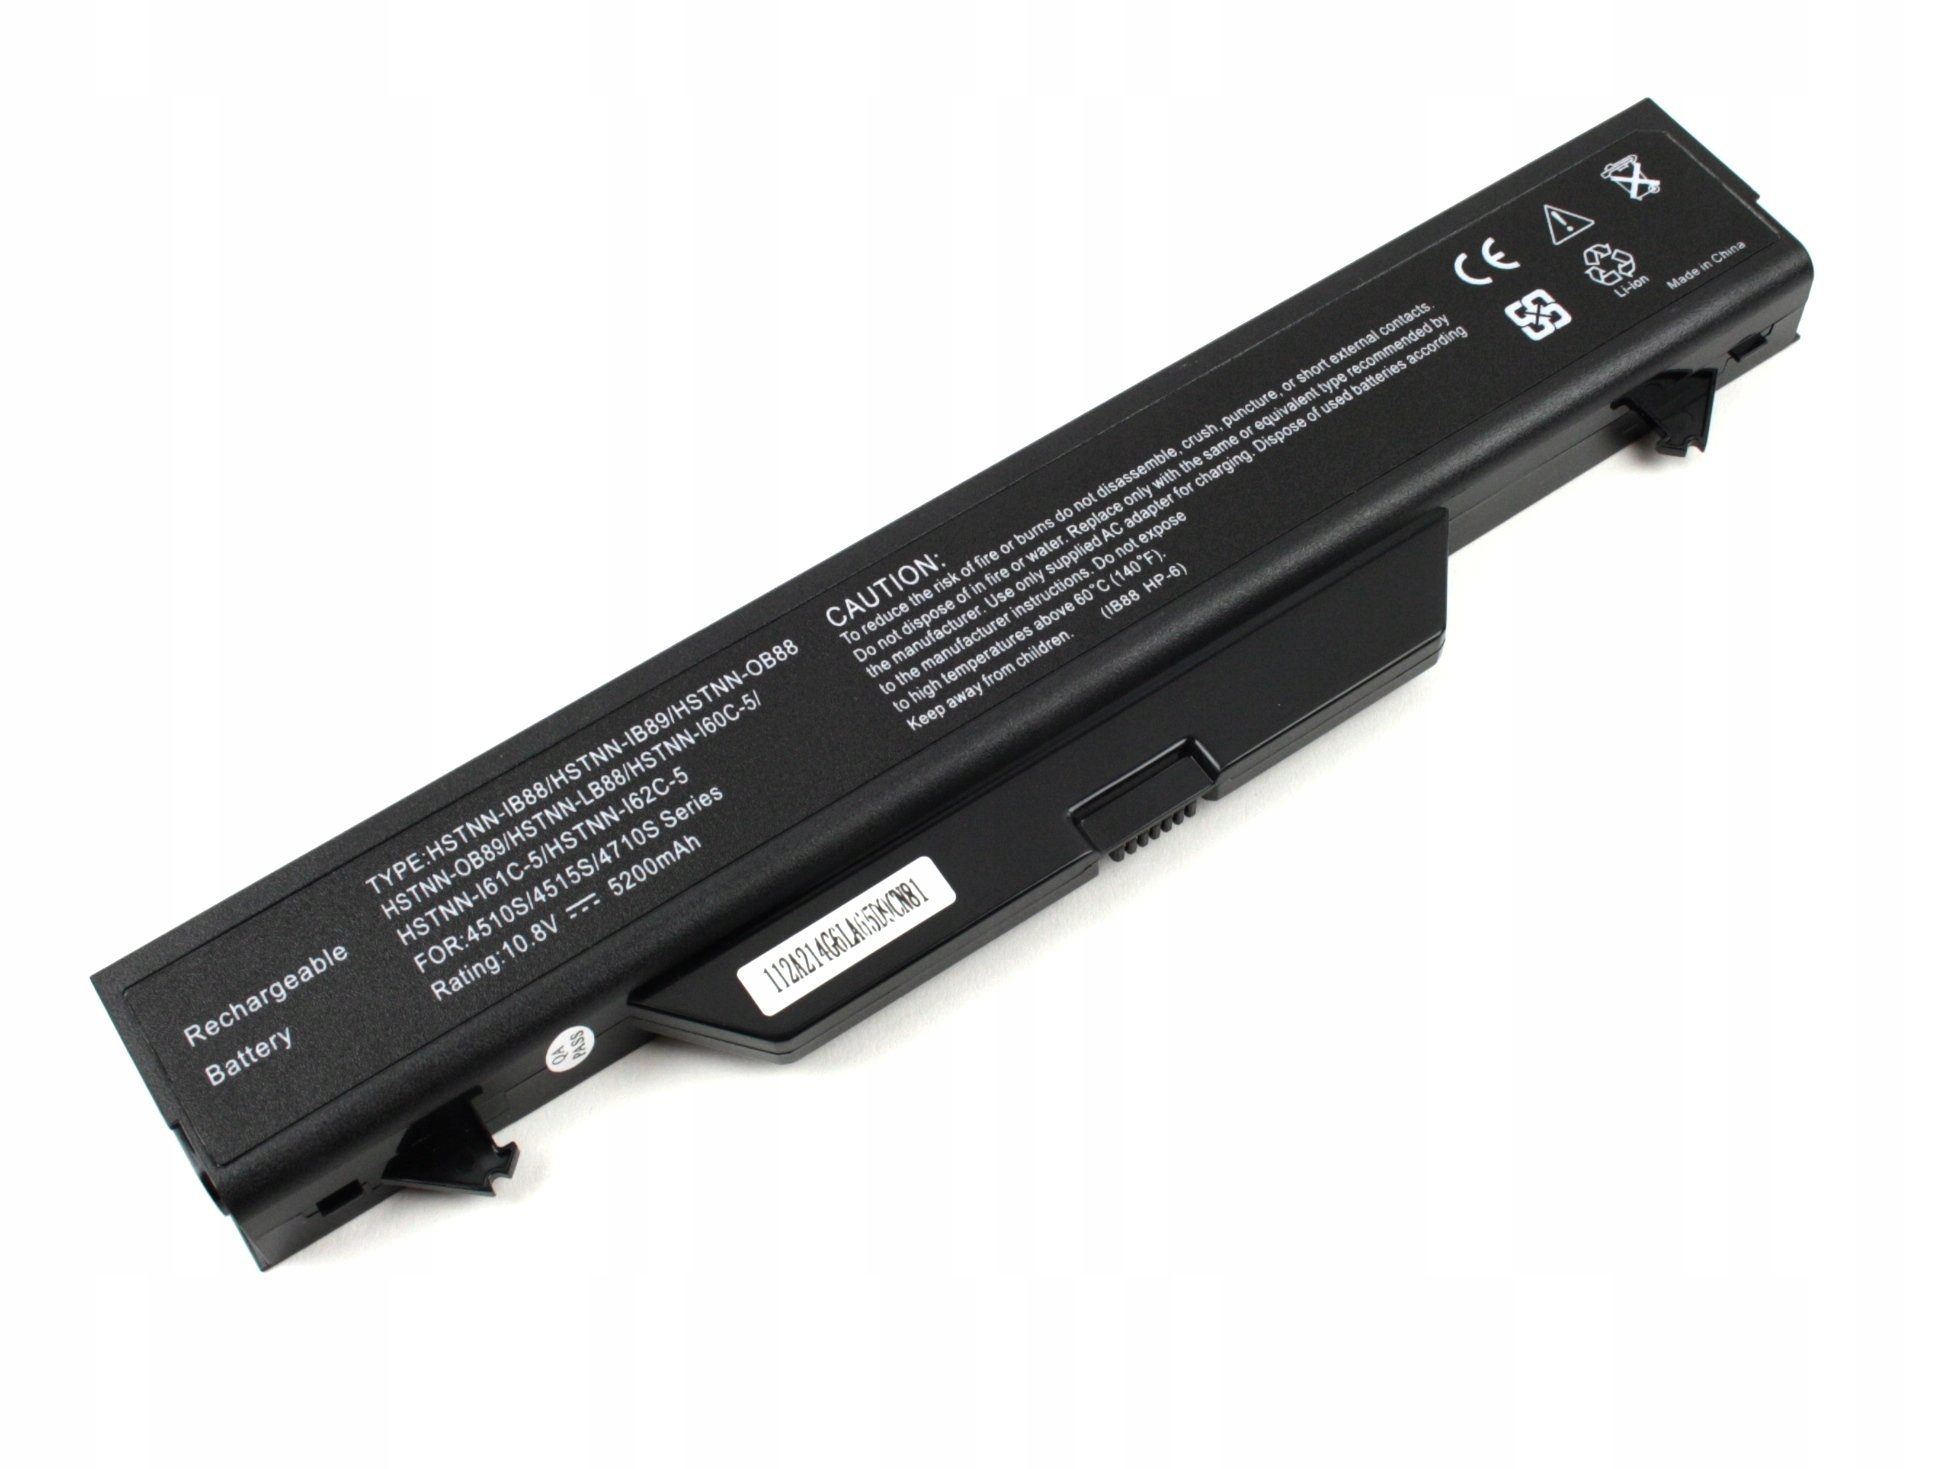 BATERIA AKUMULATOR HP PROBOOK 4510s 4710s 4515s 4720s 10.8V - Baterie do laptopów